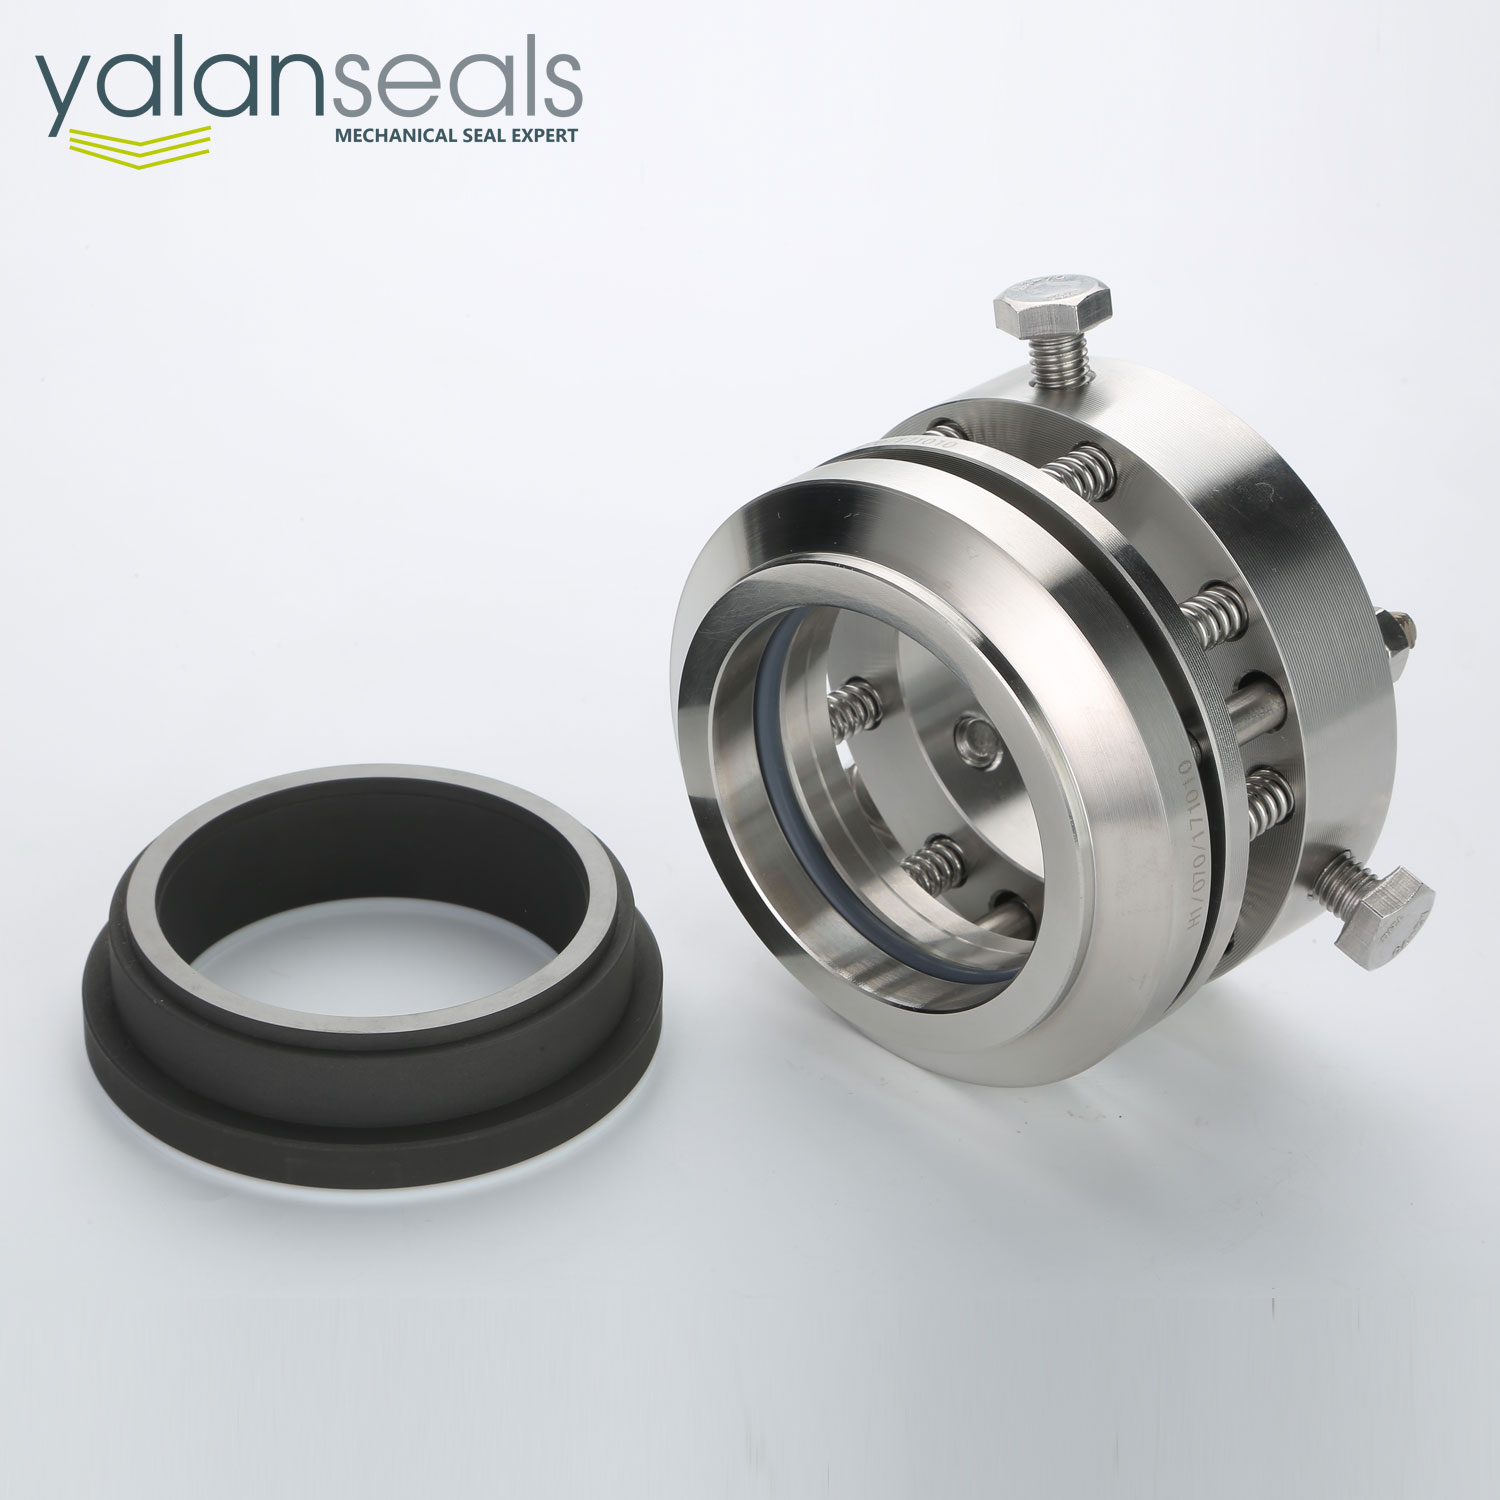 Type 202 Mechanical Seal for Mixers